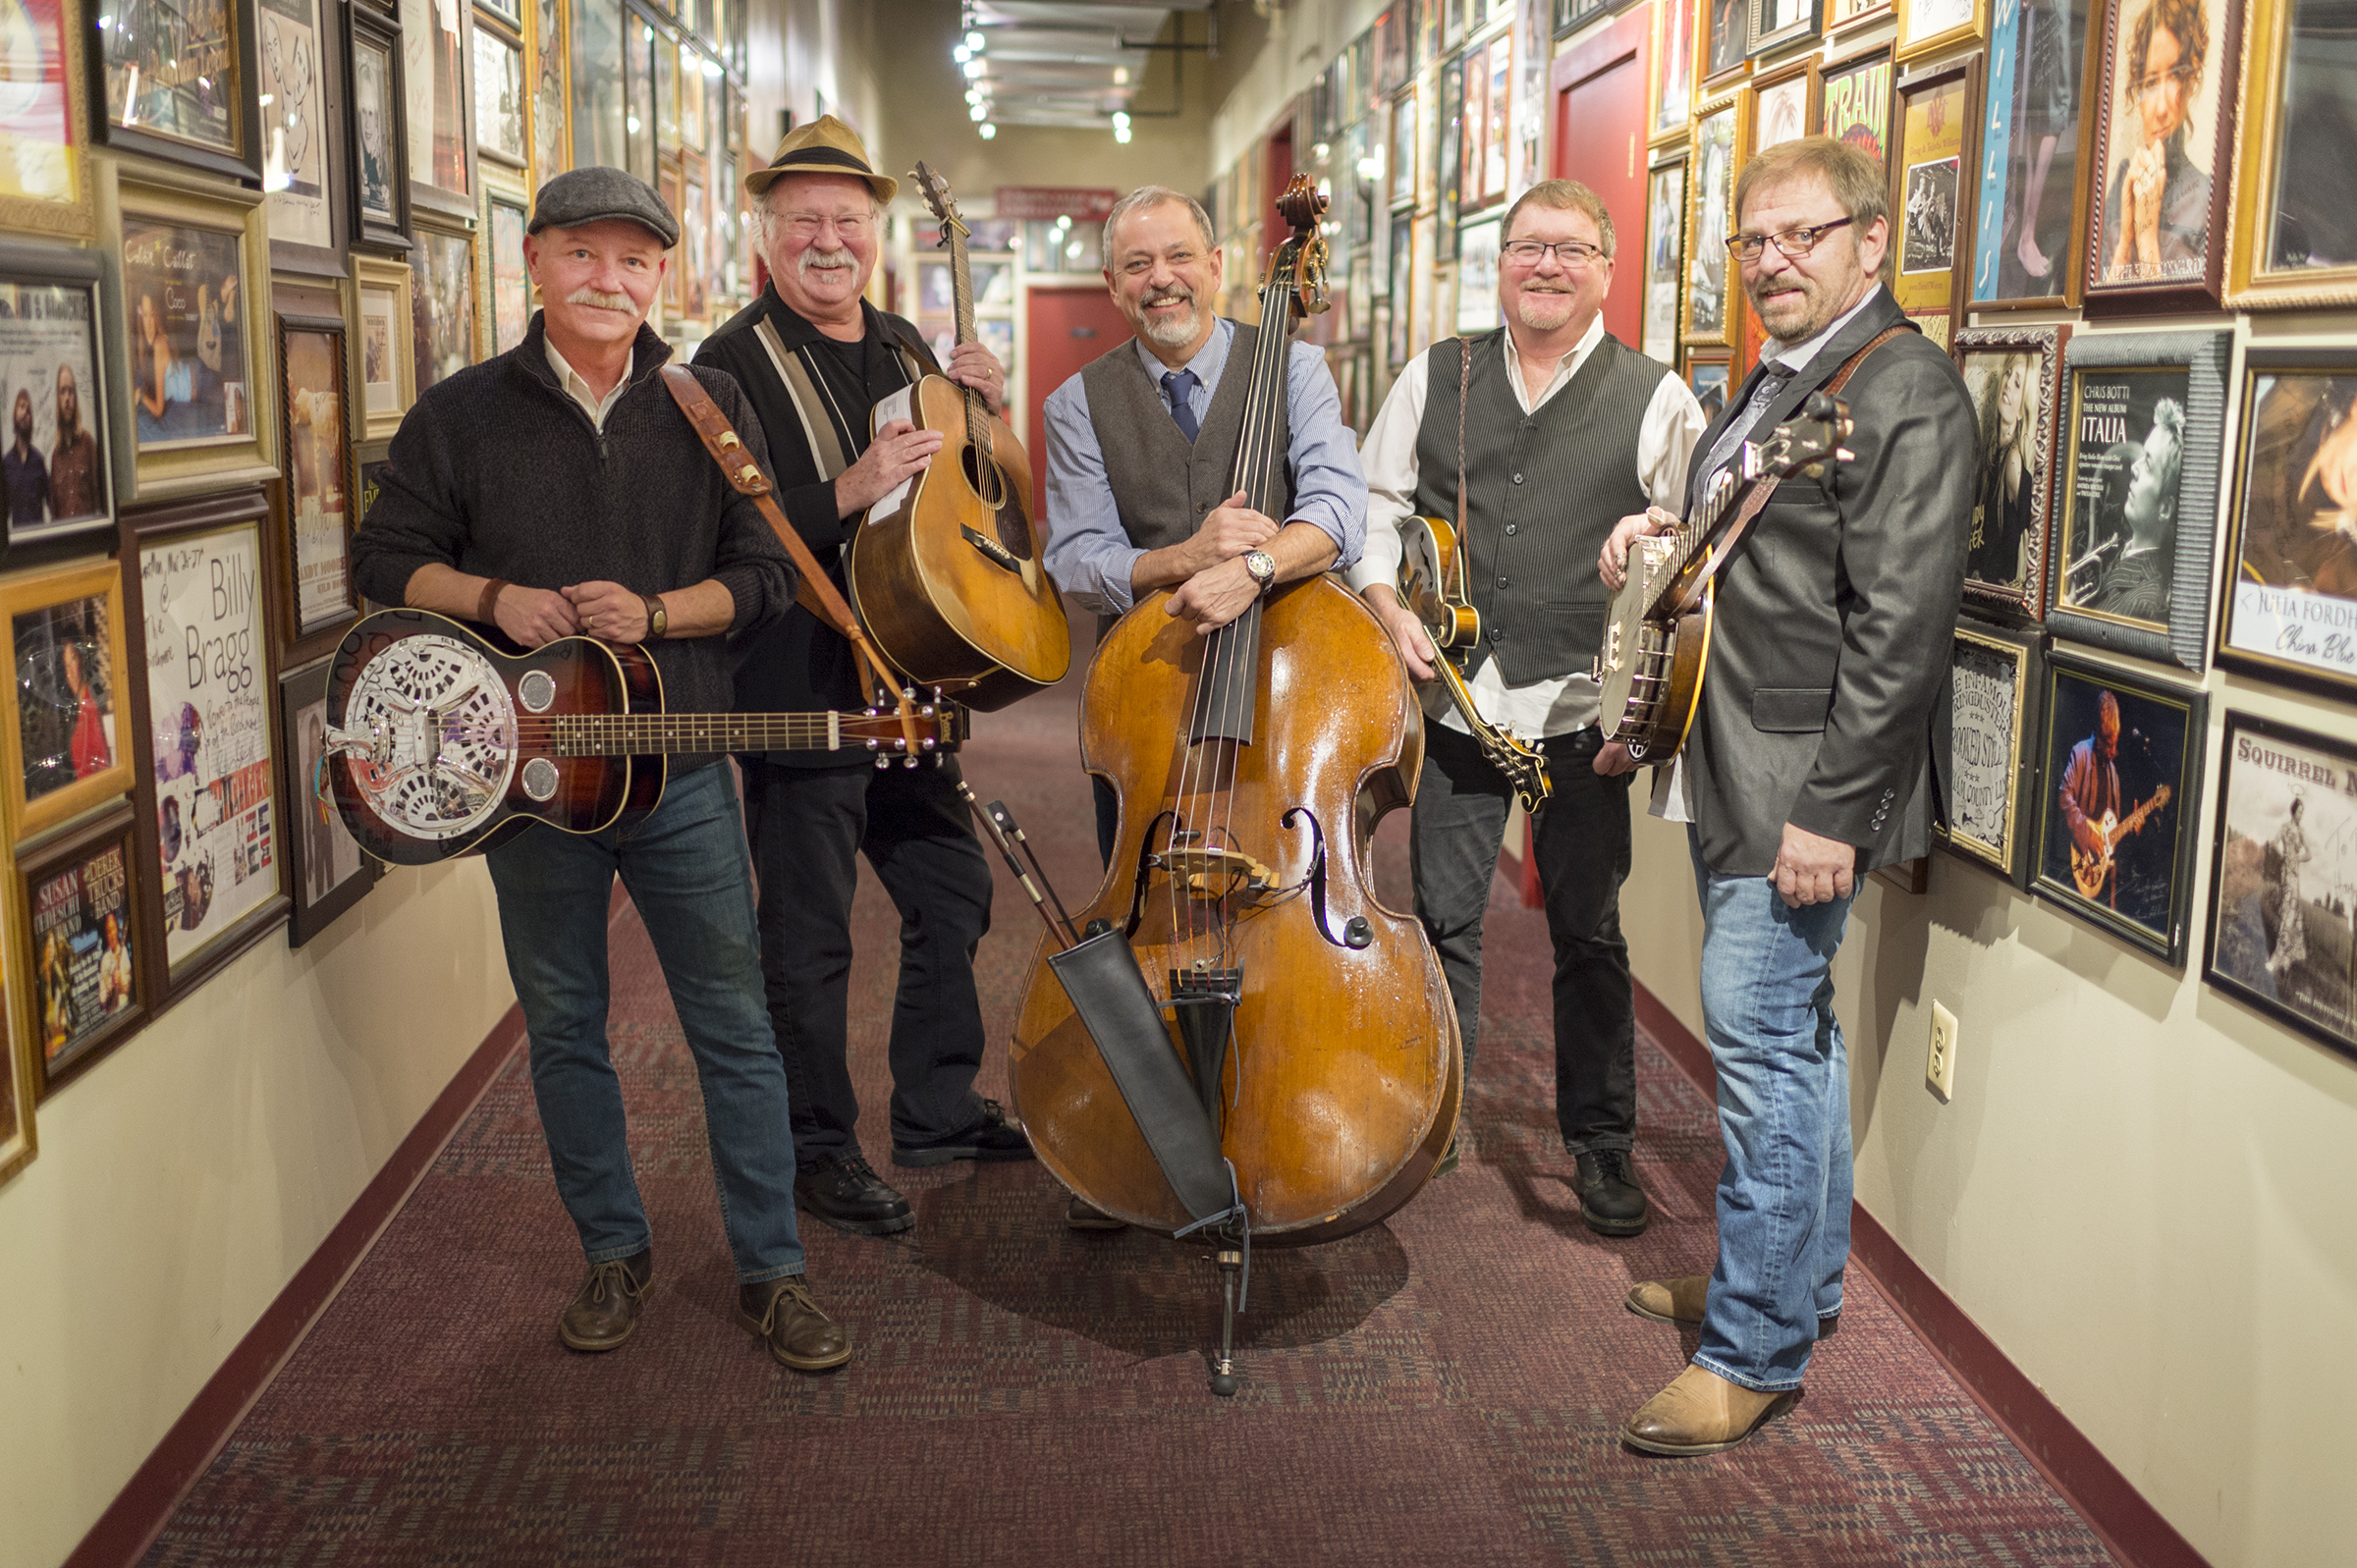 Mount Airy Bluegrass Festival releasing additional tickets day of show, June 30